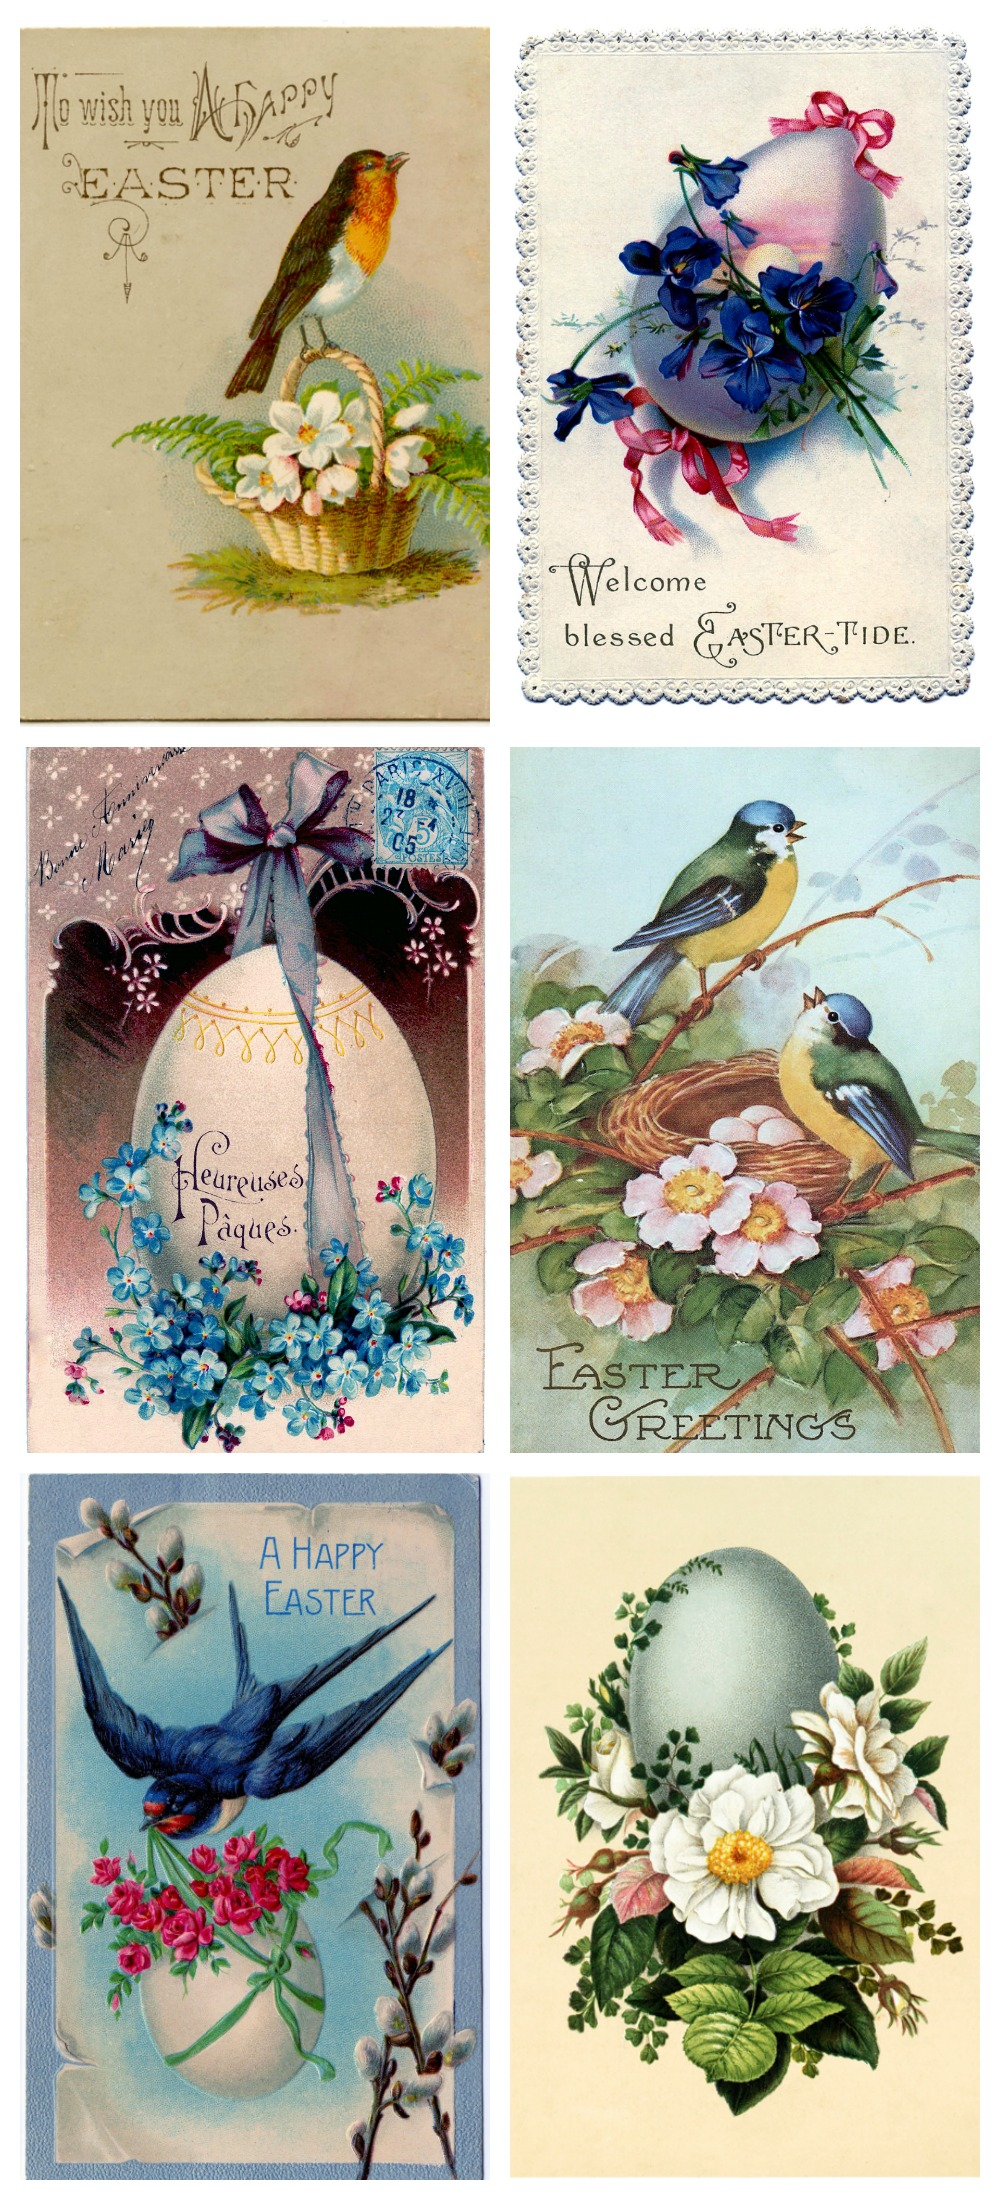 It's just a graphic of Crazy Printable Easter Pictures